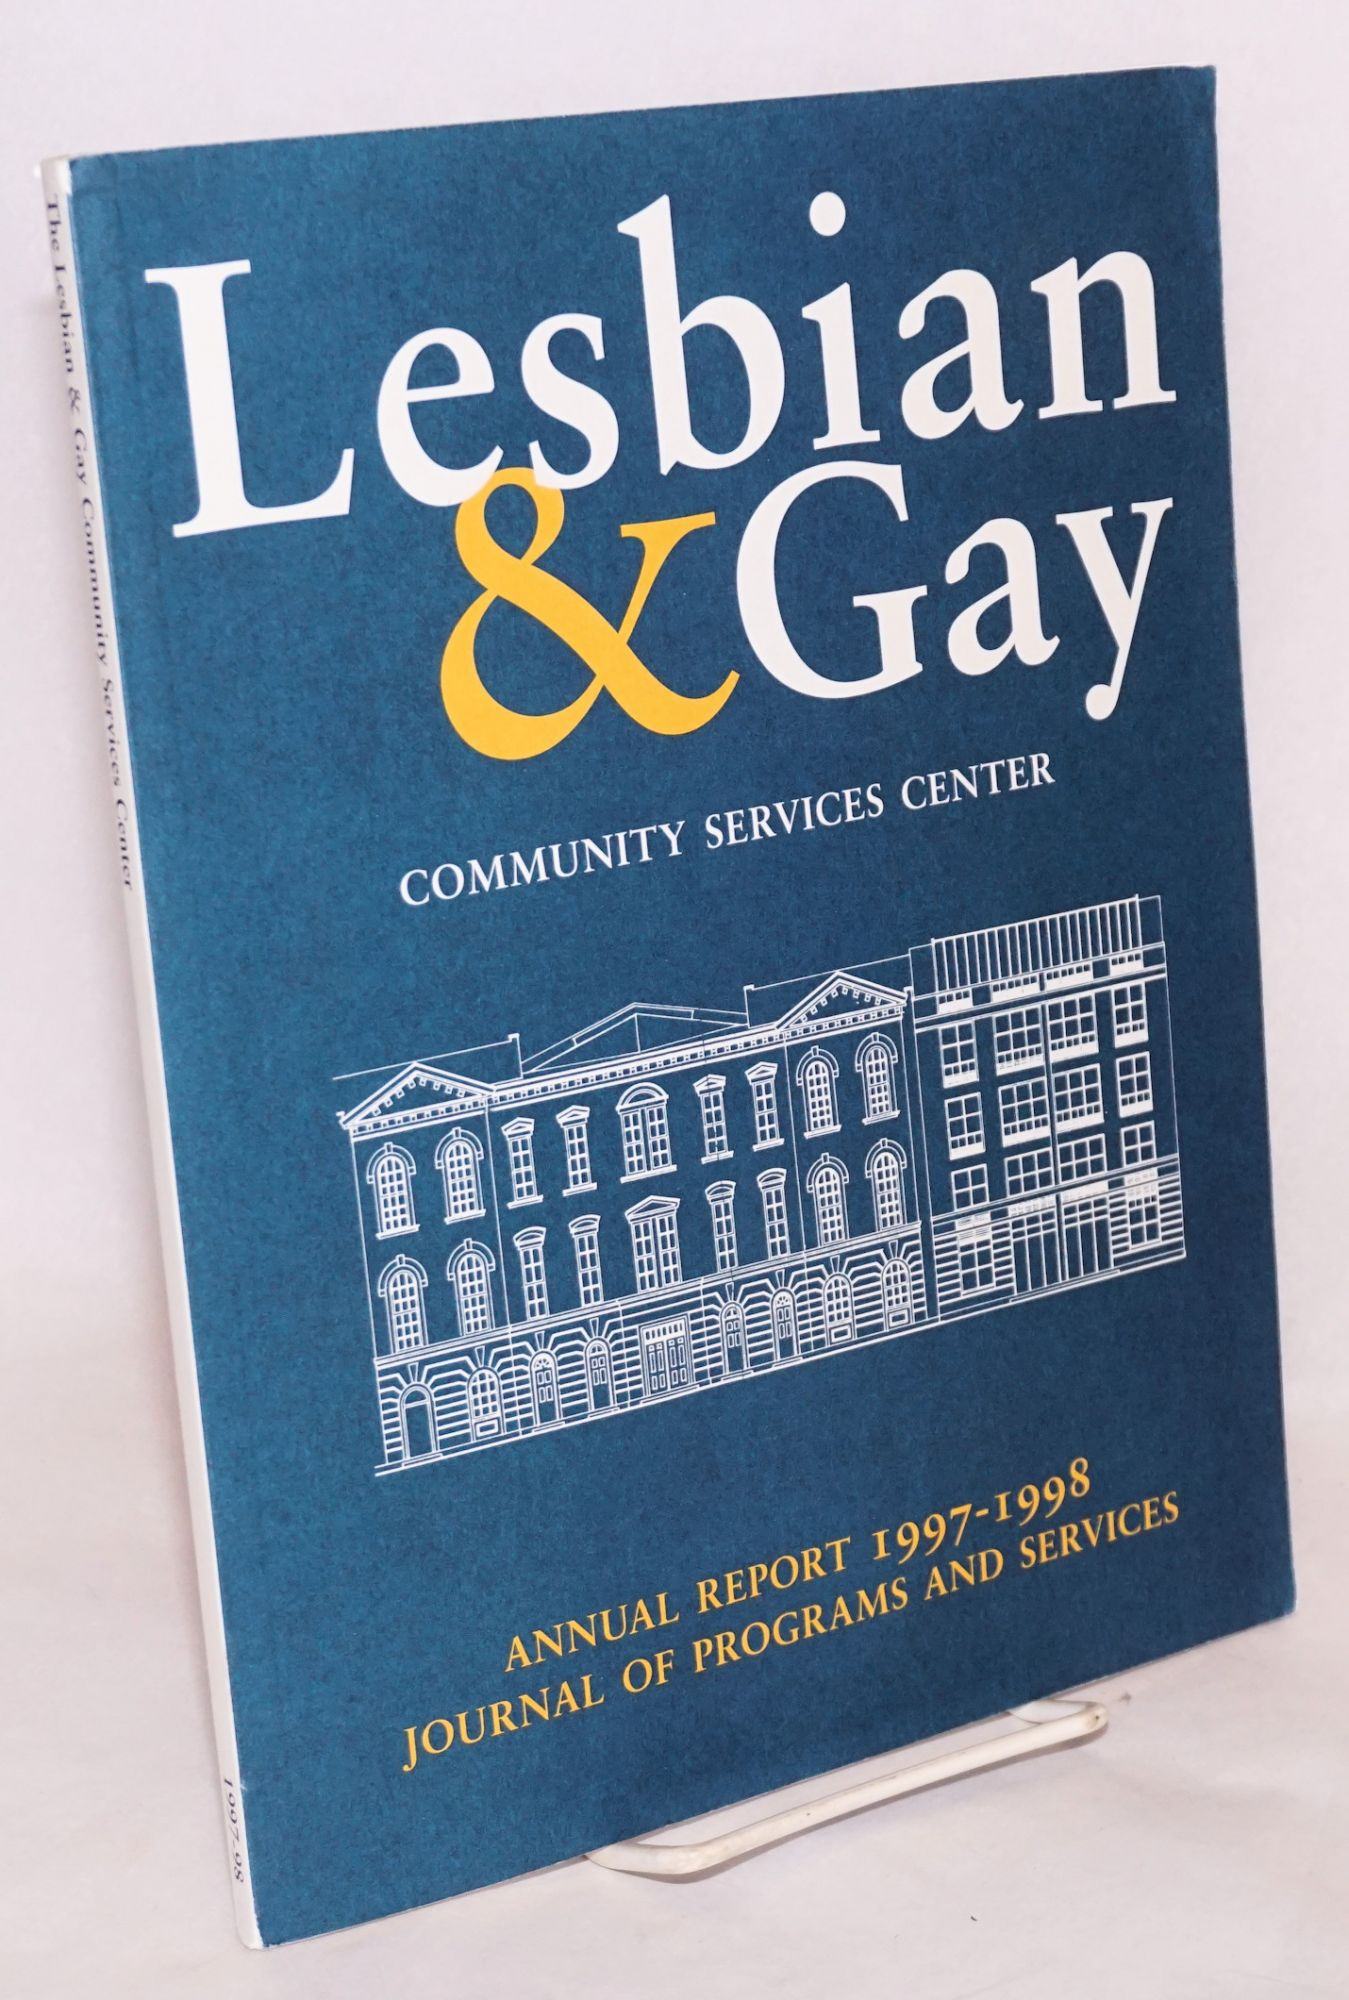 Gay community services center